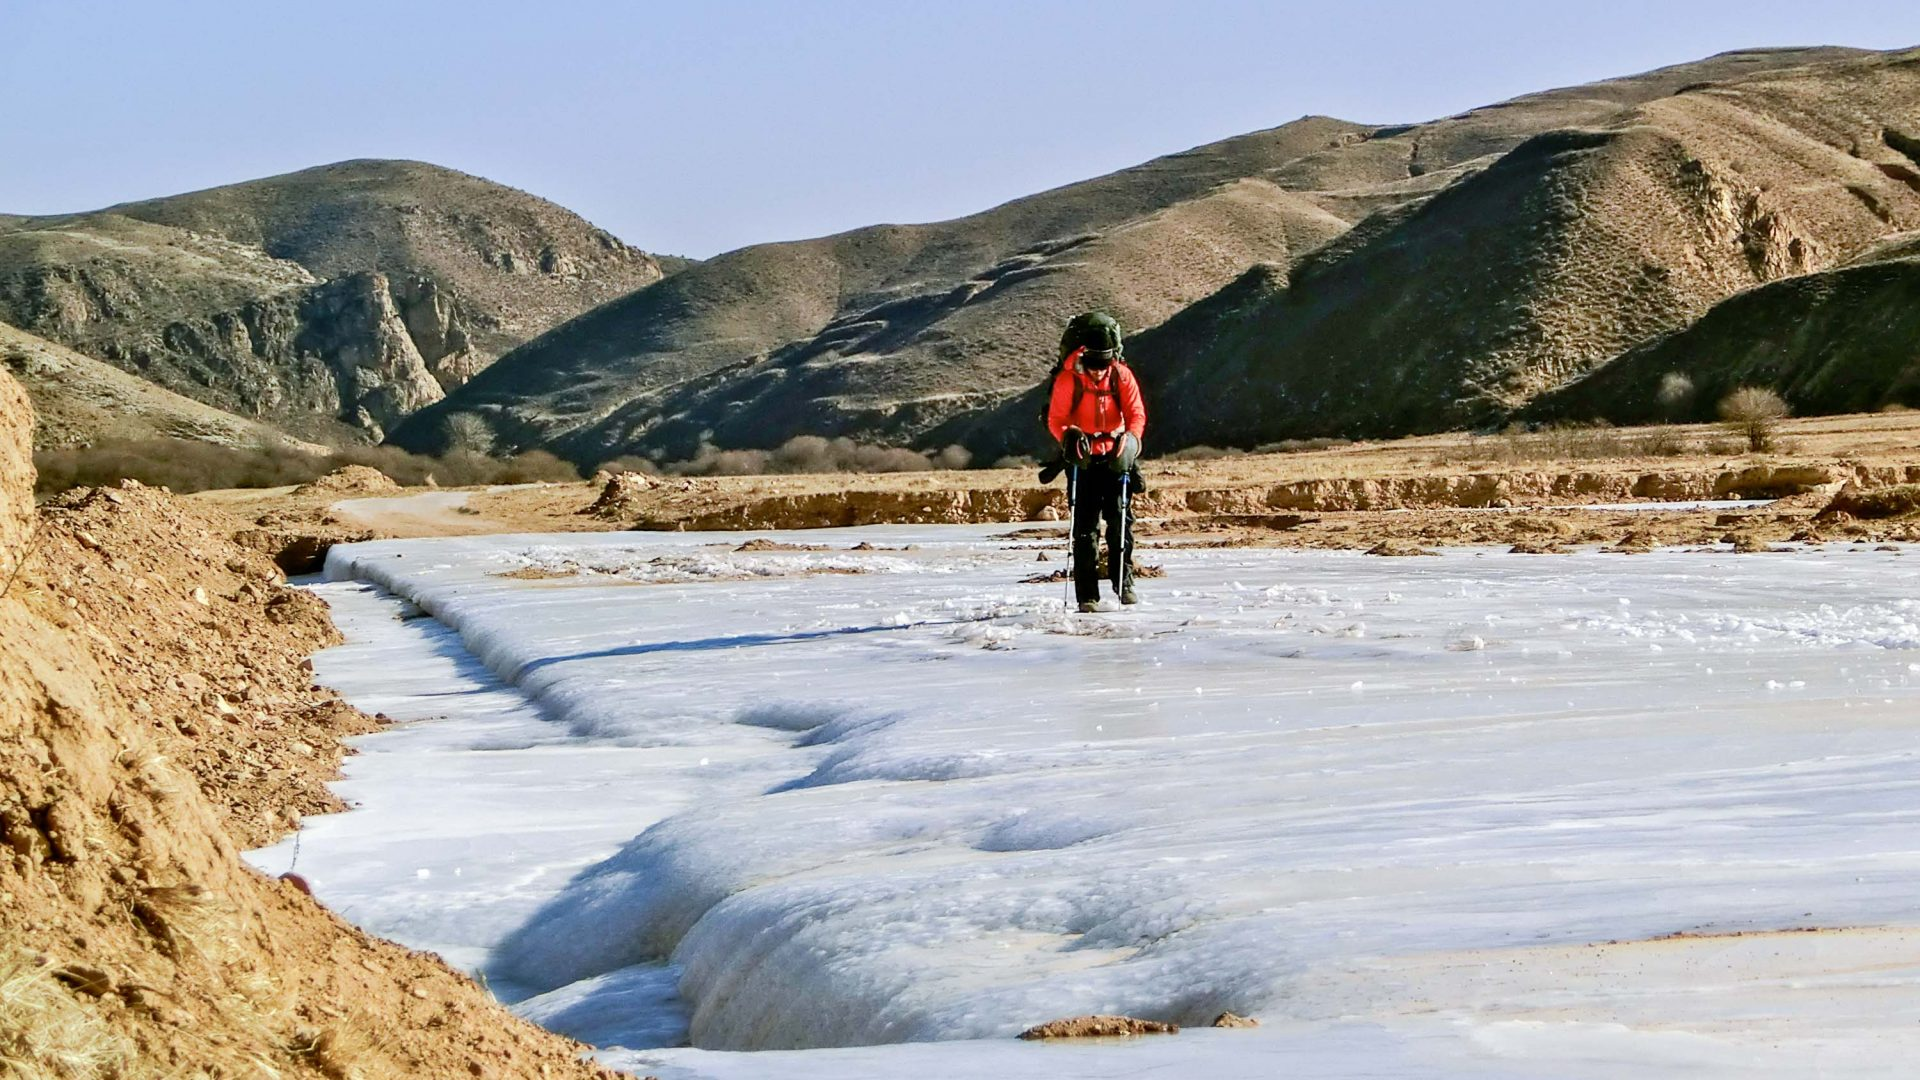 After crossing the Gobi desert, Leon finds himself trekking on ice in northern China.